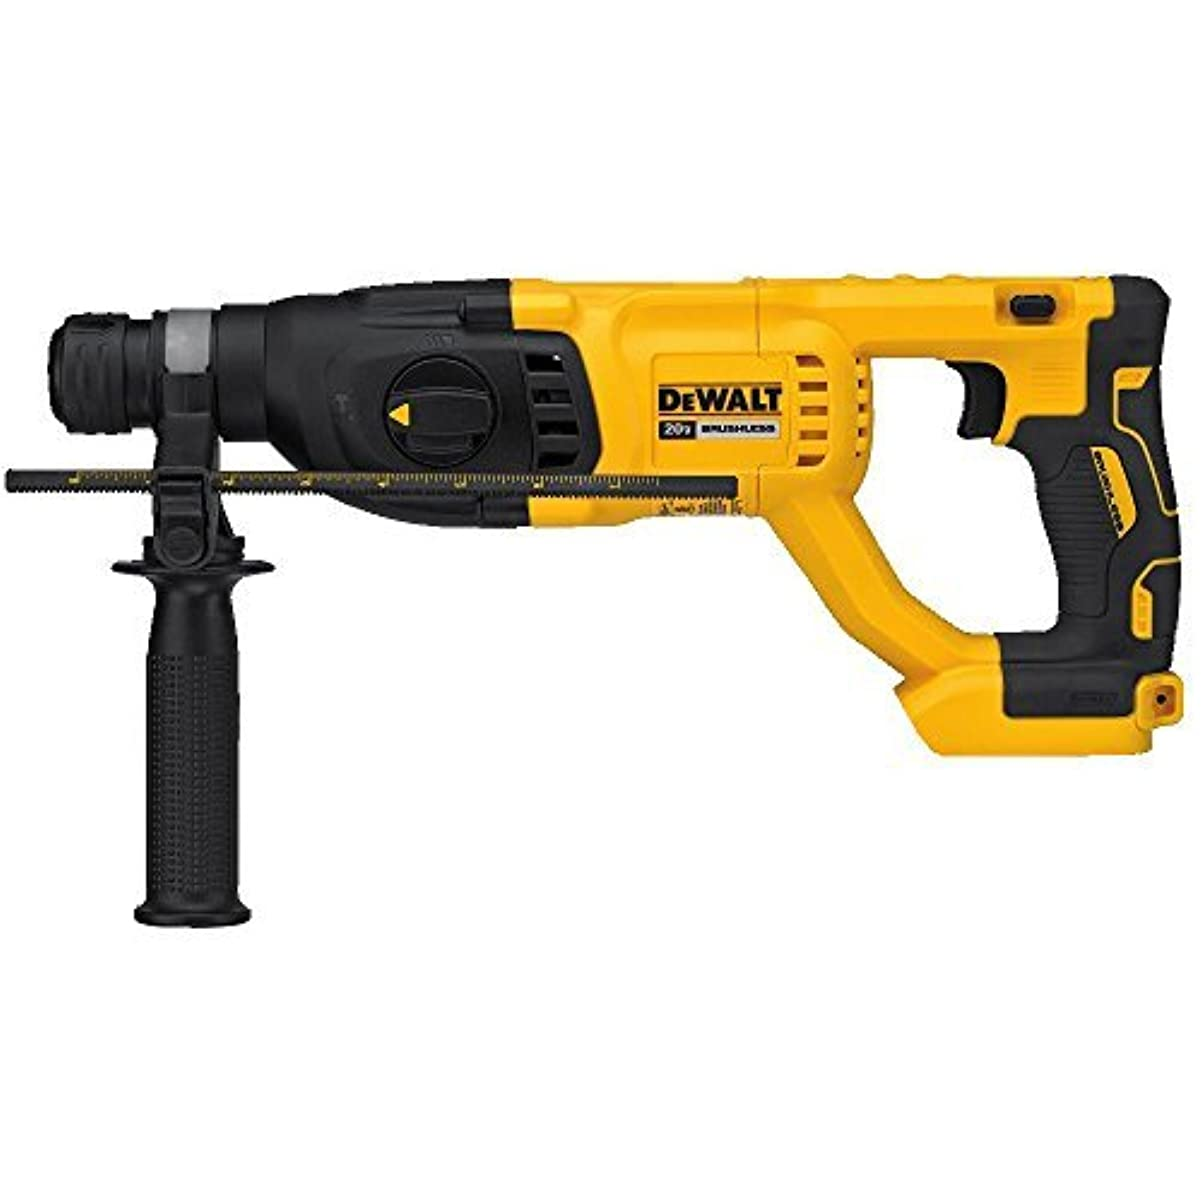 "ぜいたく挽く嵐が丘DEWALT DCH133B 20V Max XR Brushless 1"" D-Handle Rotary Hammer Drill [並行輸入品]"